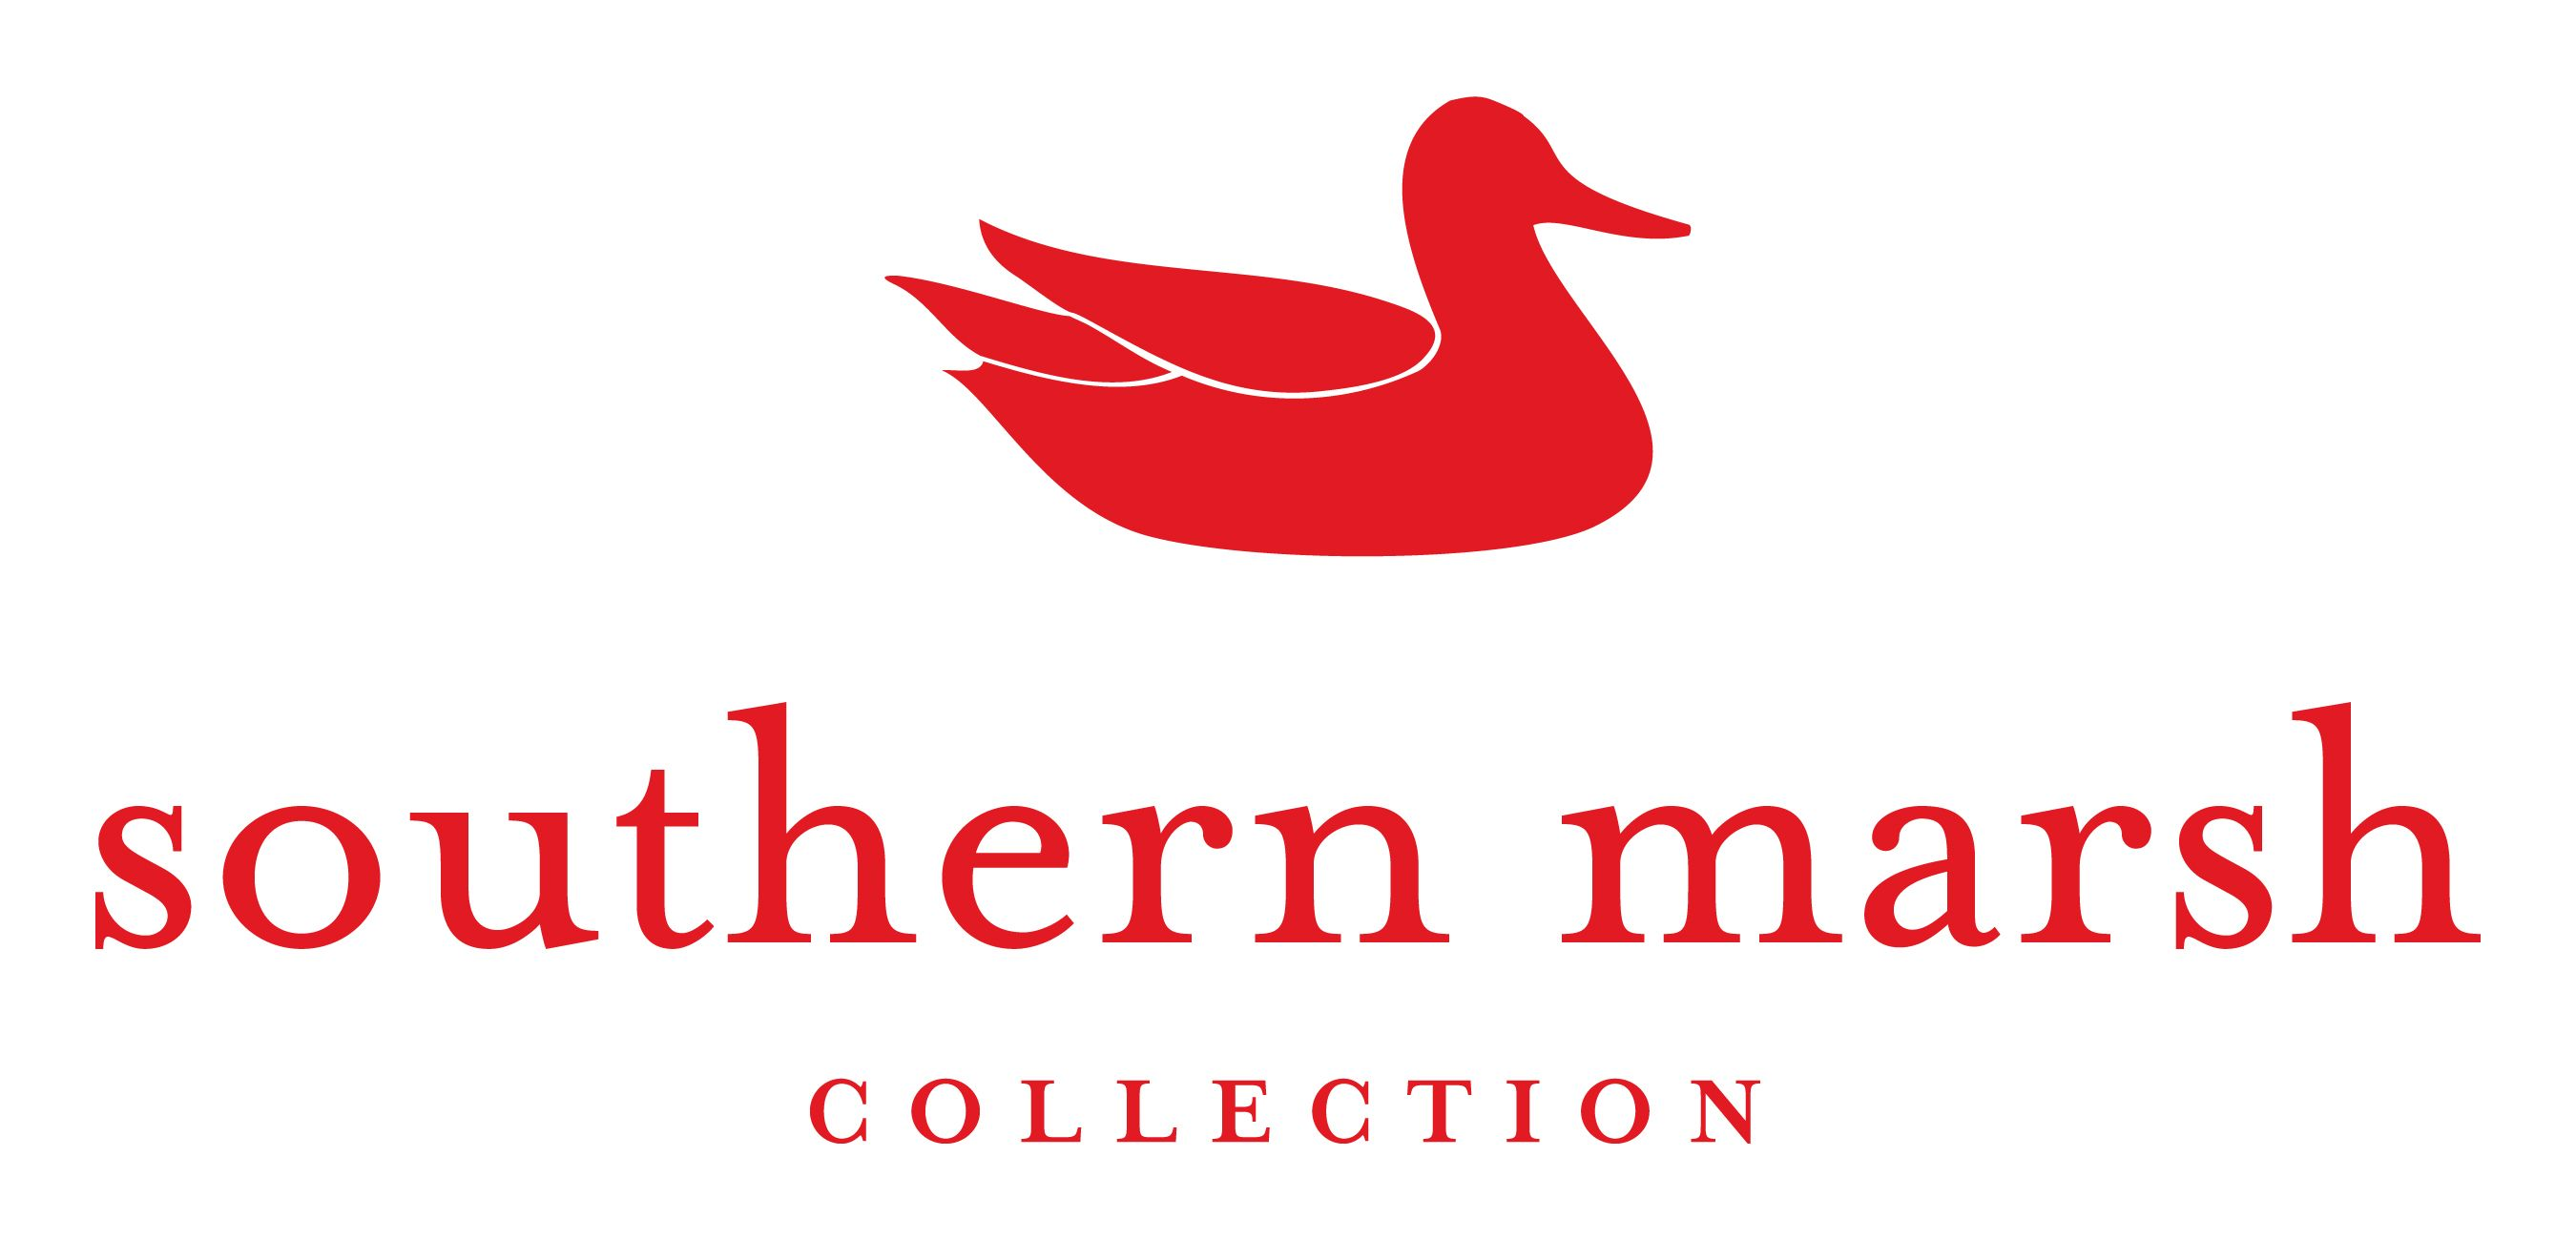 Image Result For Southern Brands Southern Marsh Logo Southern